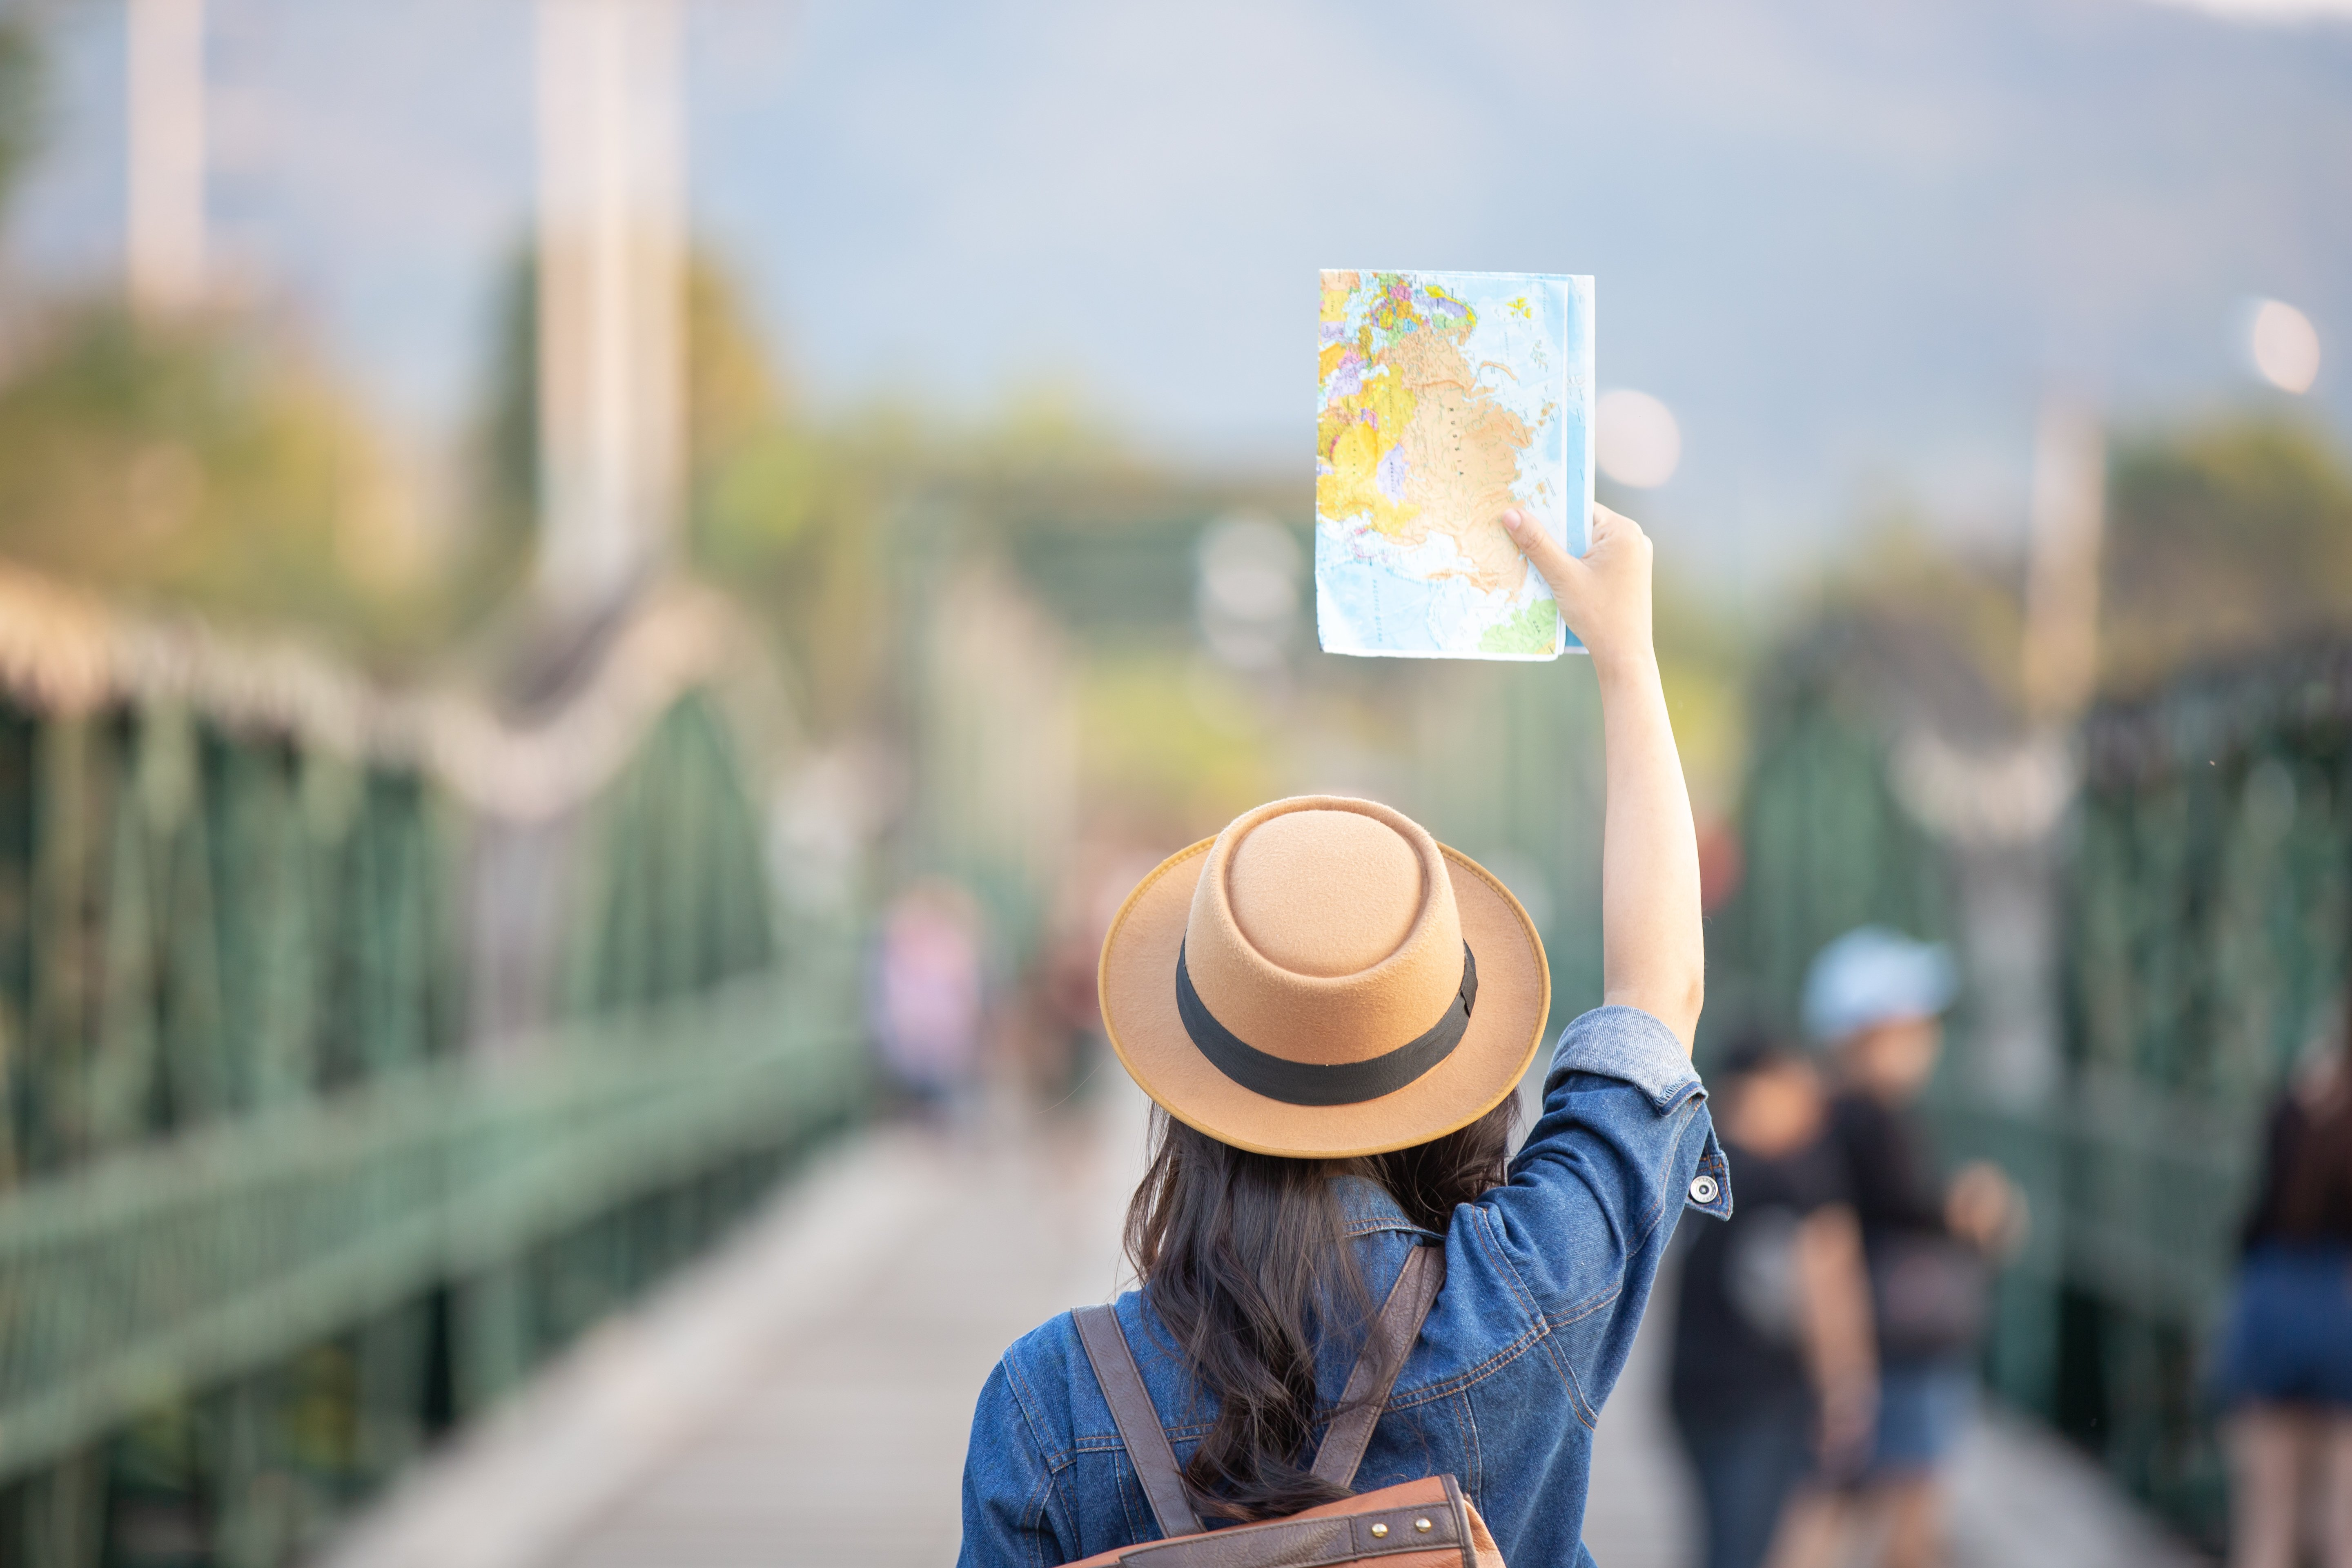 A female tourist trying to find her away around with help of a map | Photo: Free Pik